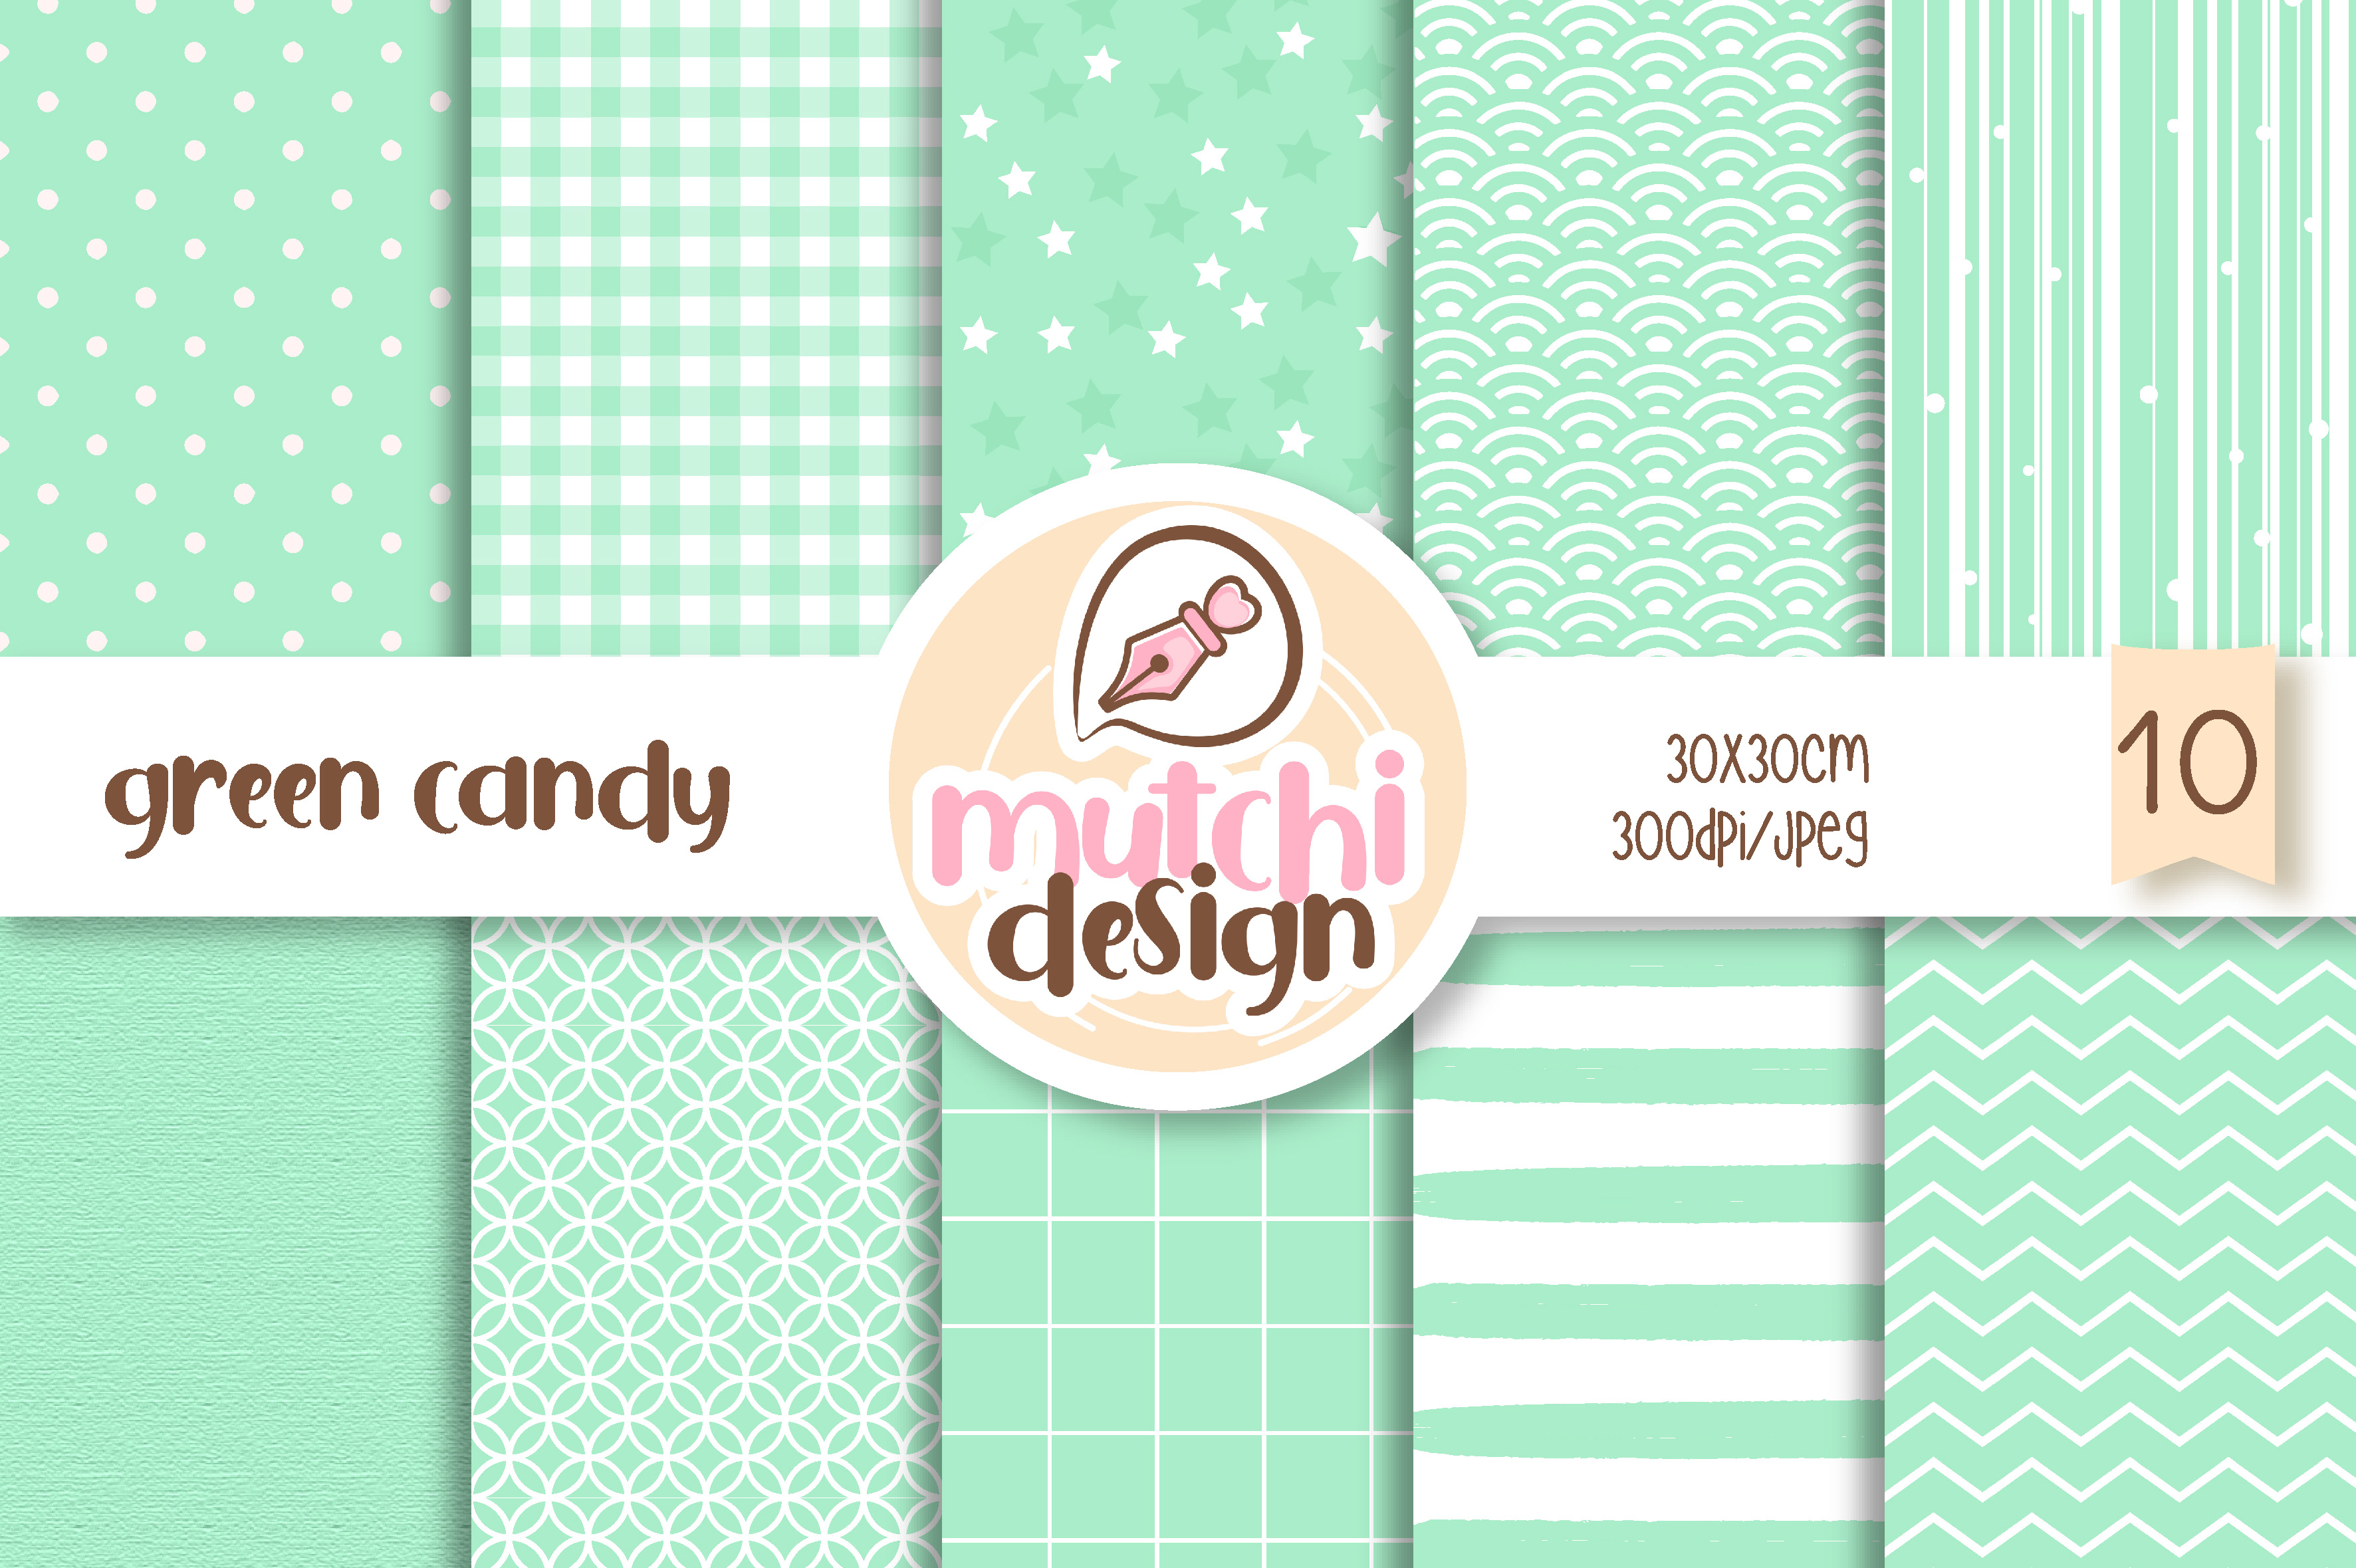 Download Free Green Candy Color Digital Papers Graphic By Mutchi Design for Cricut Explore, Silhouette and other cutting machines.